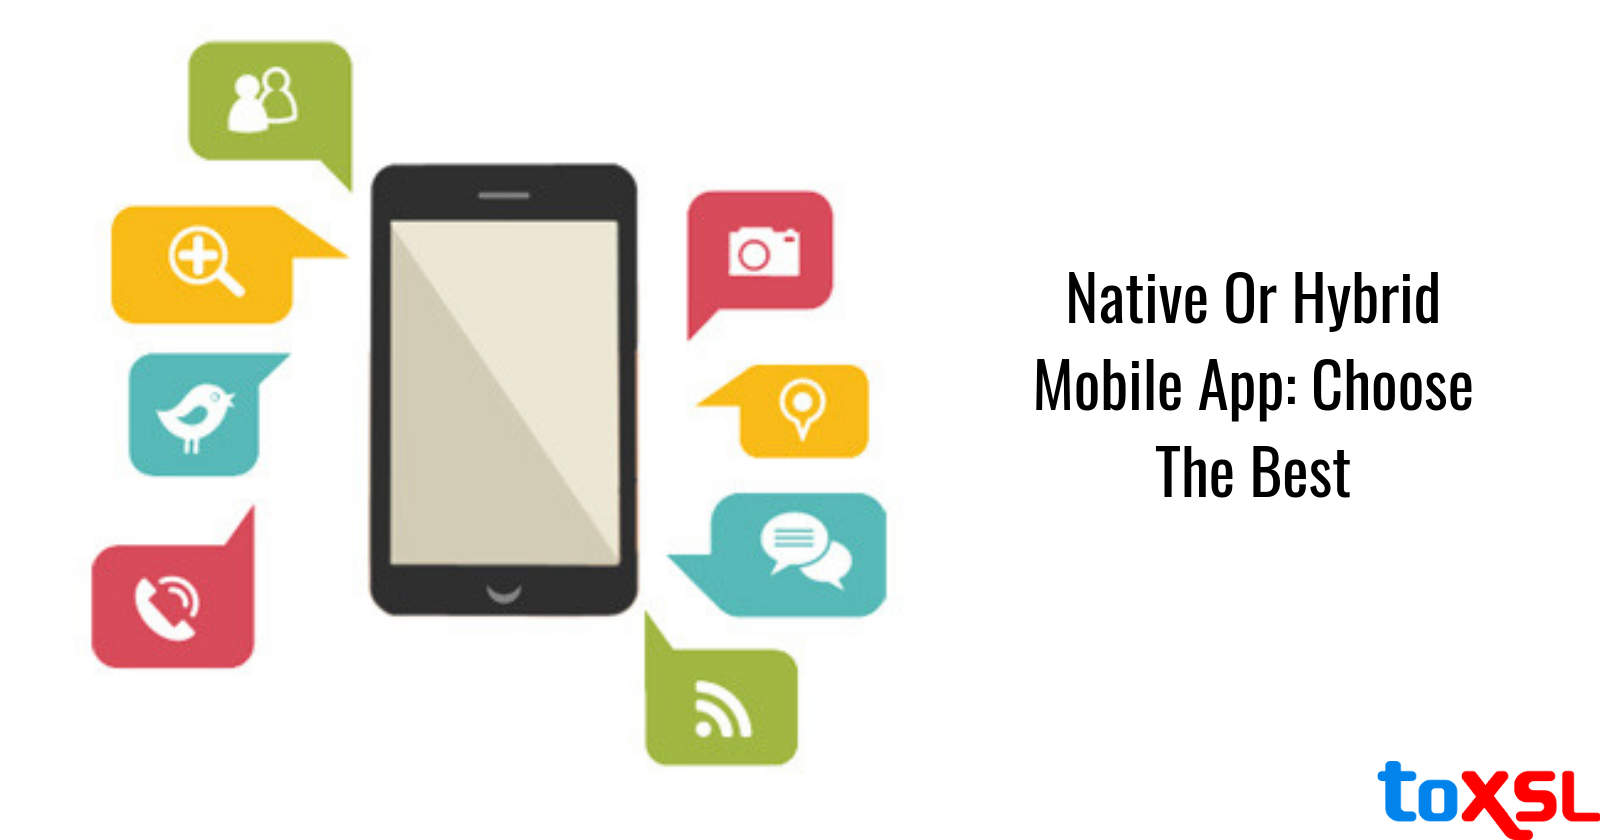 Native Or Hybrid Mobile App: Choose The Best